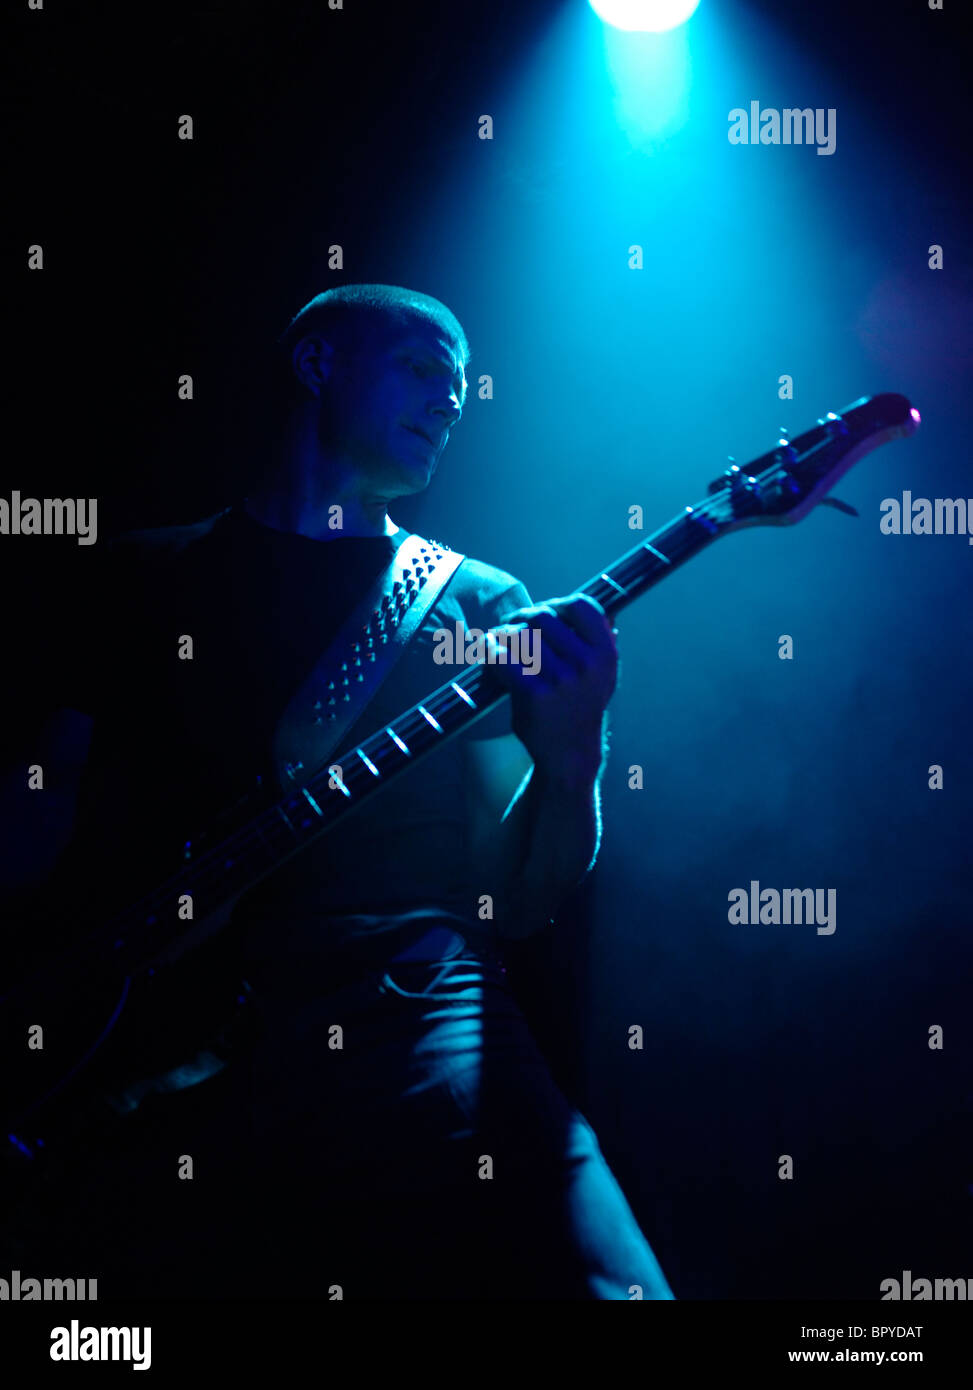 Bass guitarist in the spotlight - Stock Image